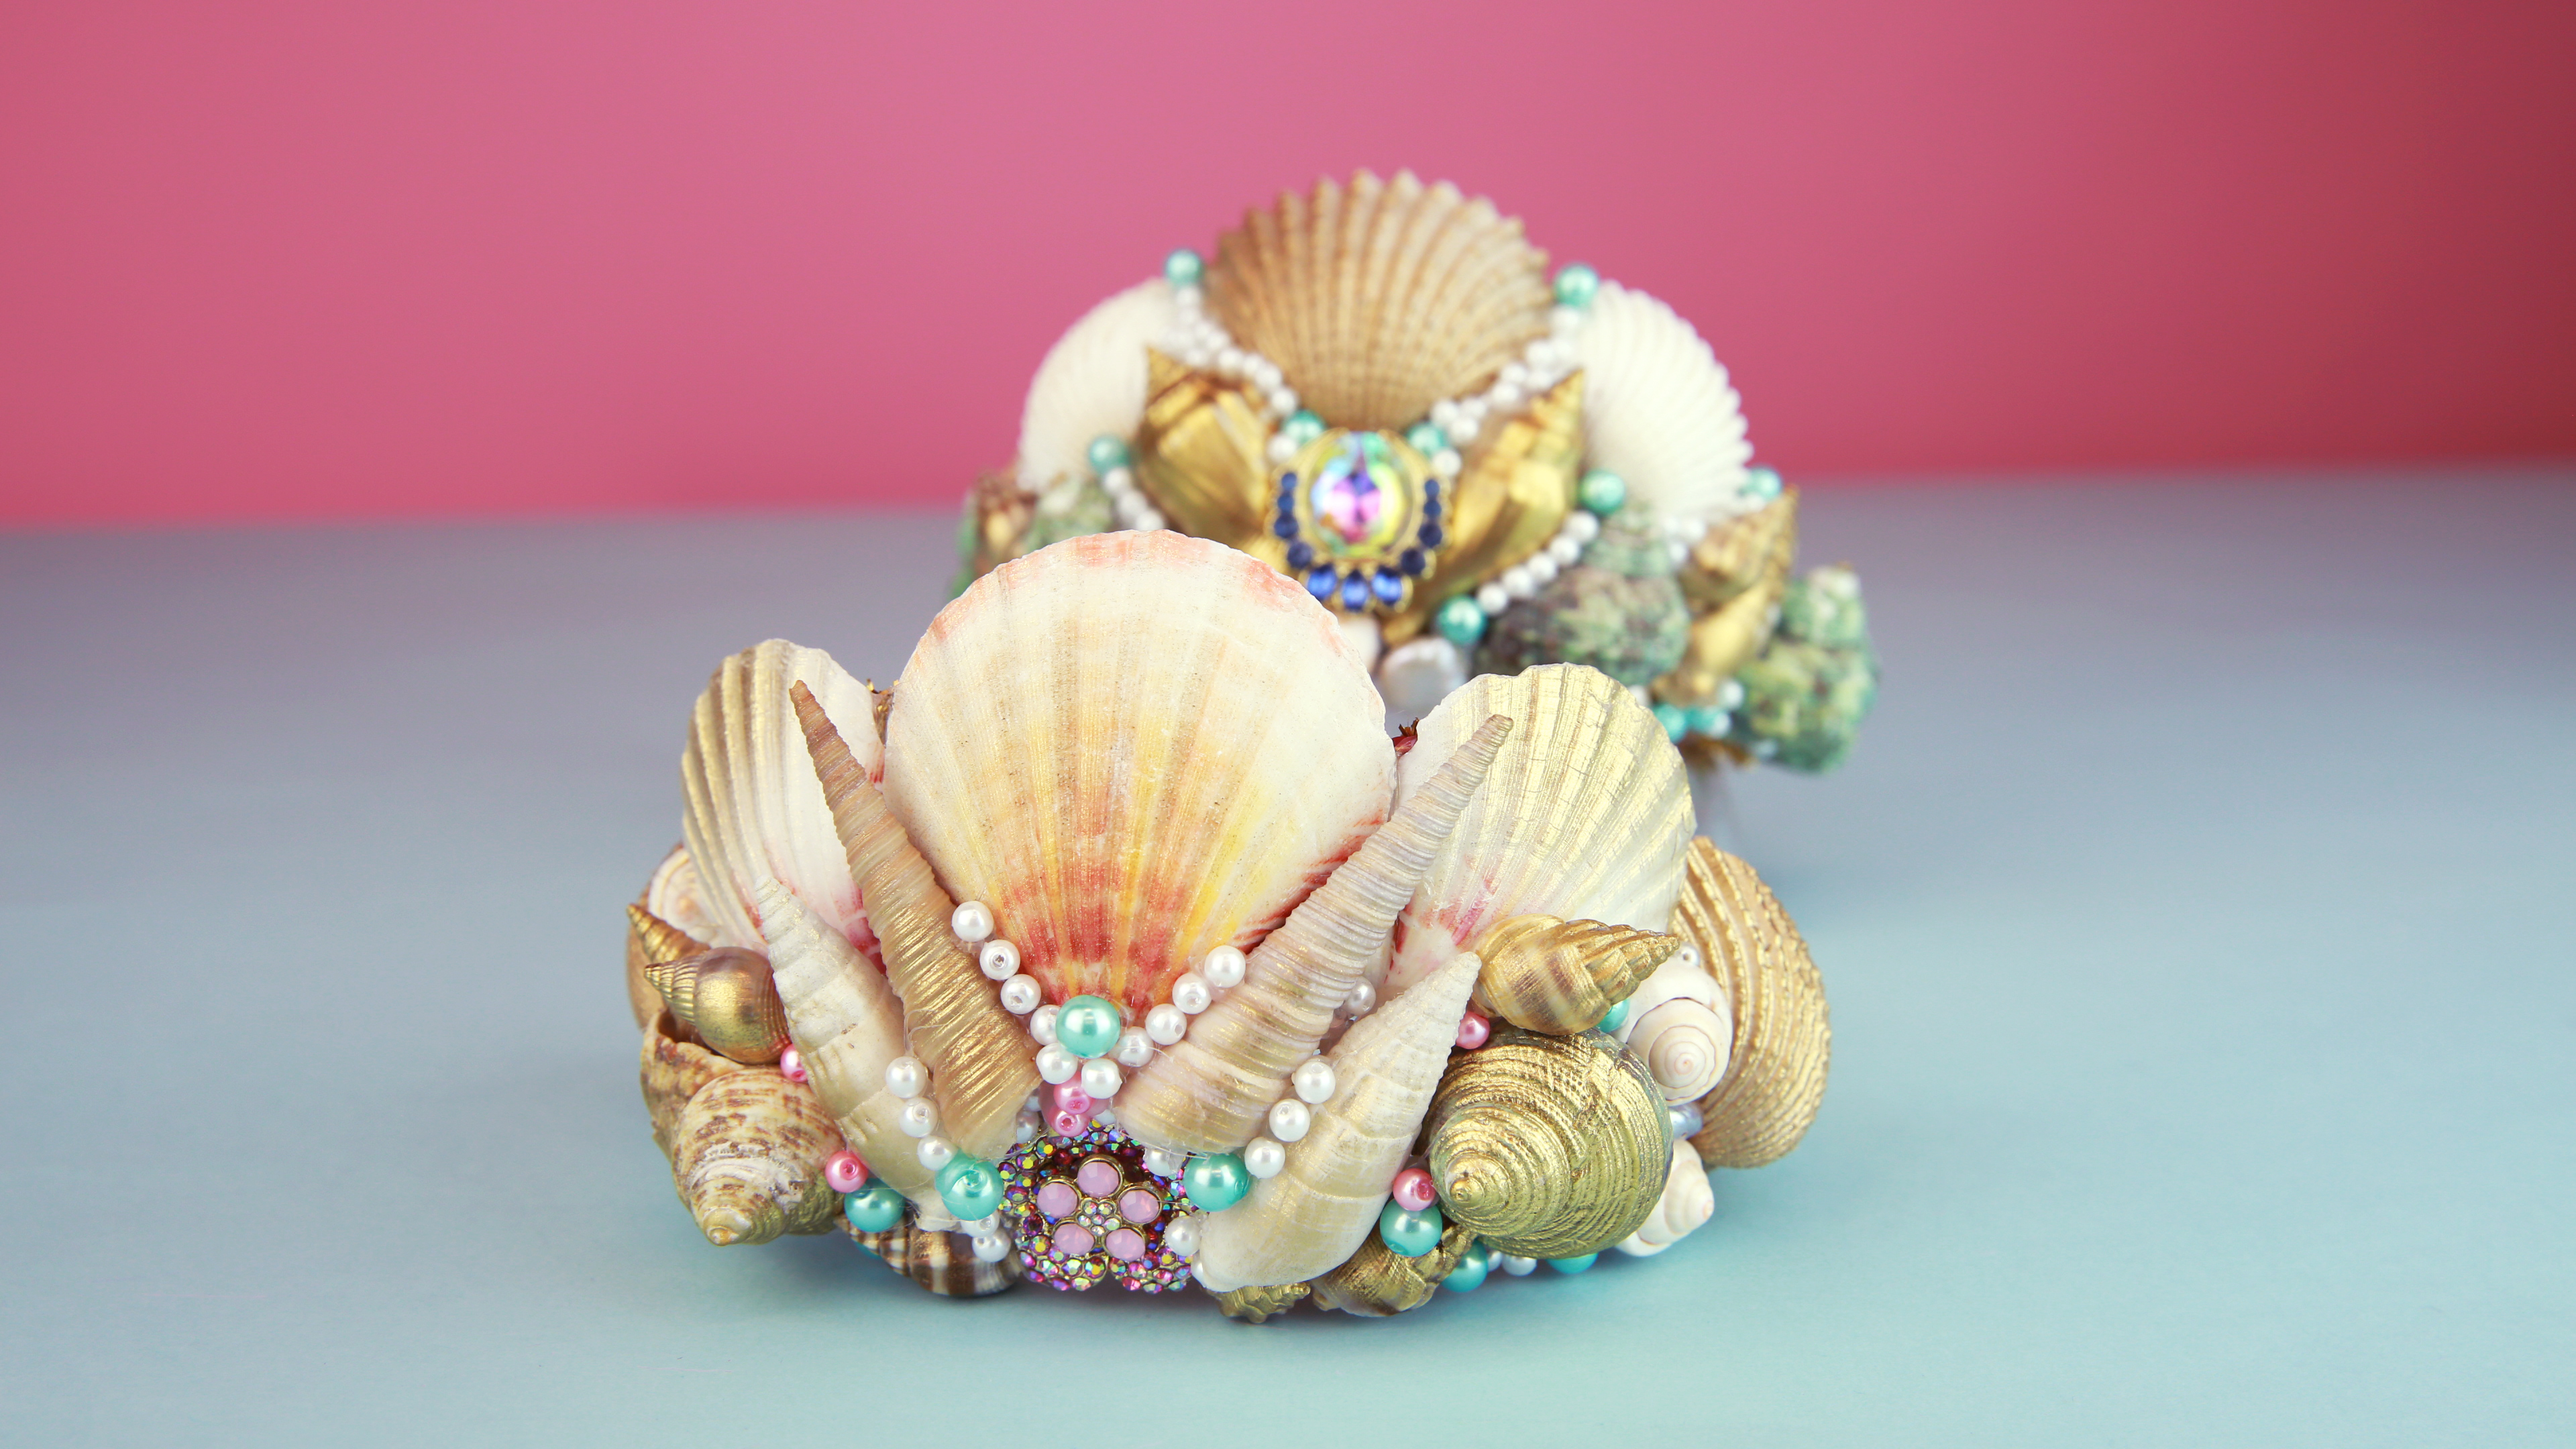 This DIY mermaid crown will unleash your inner underwater queen